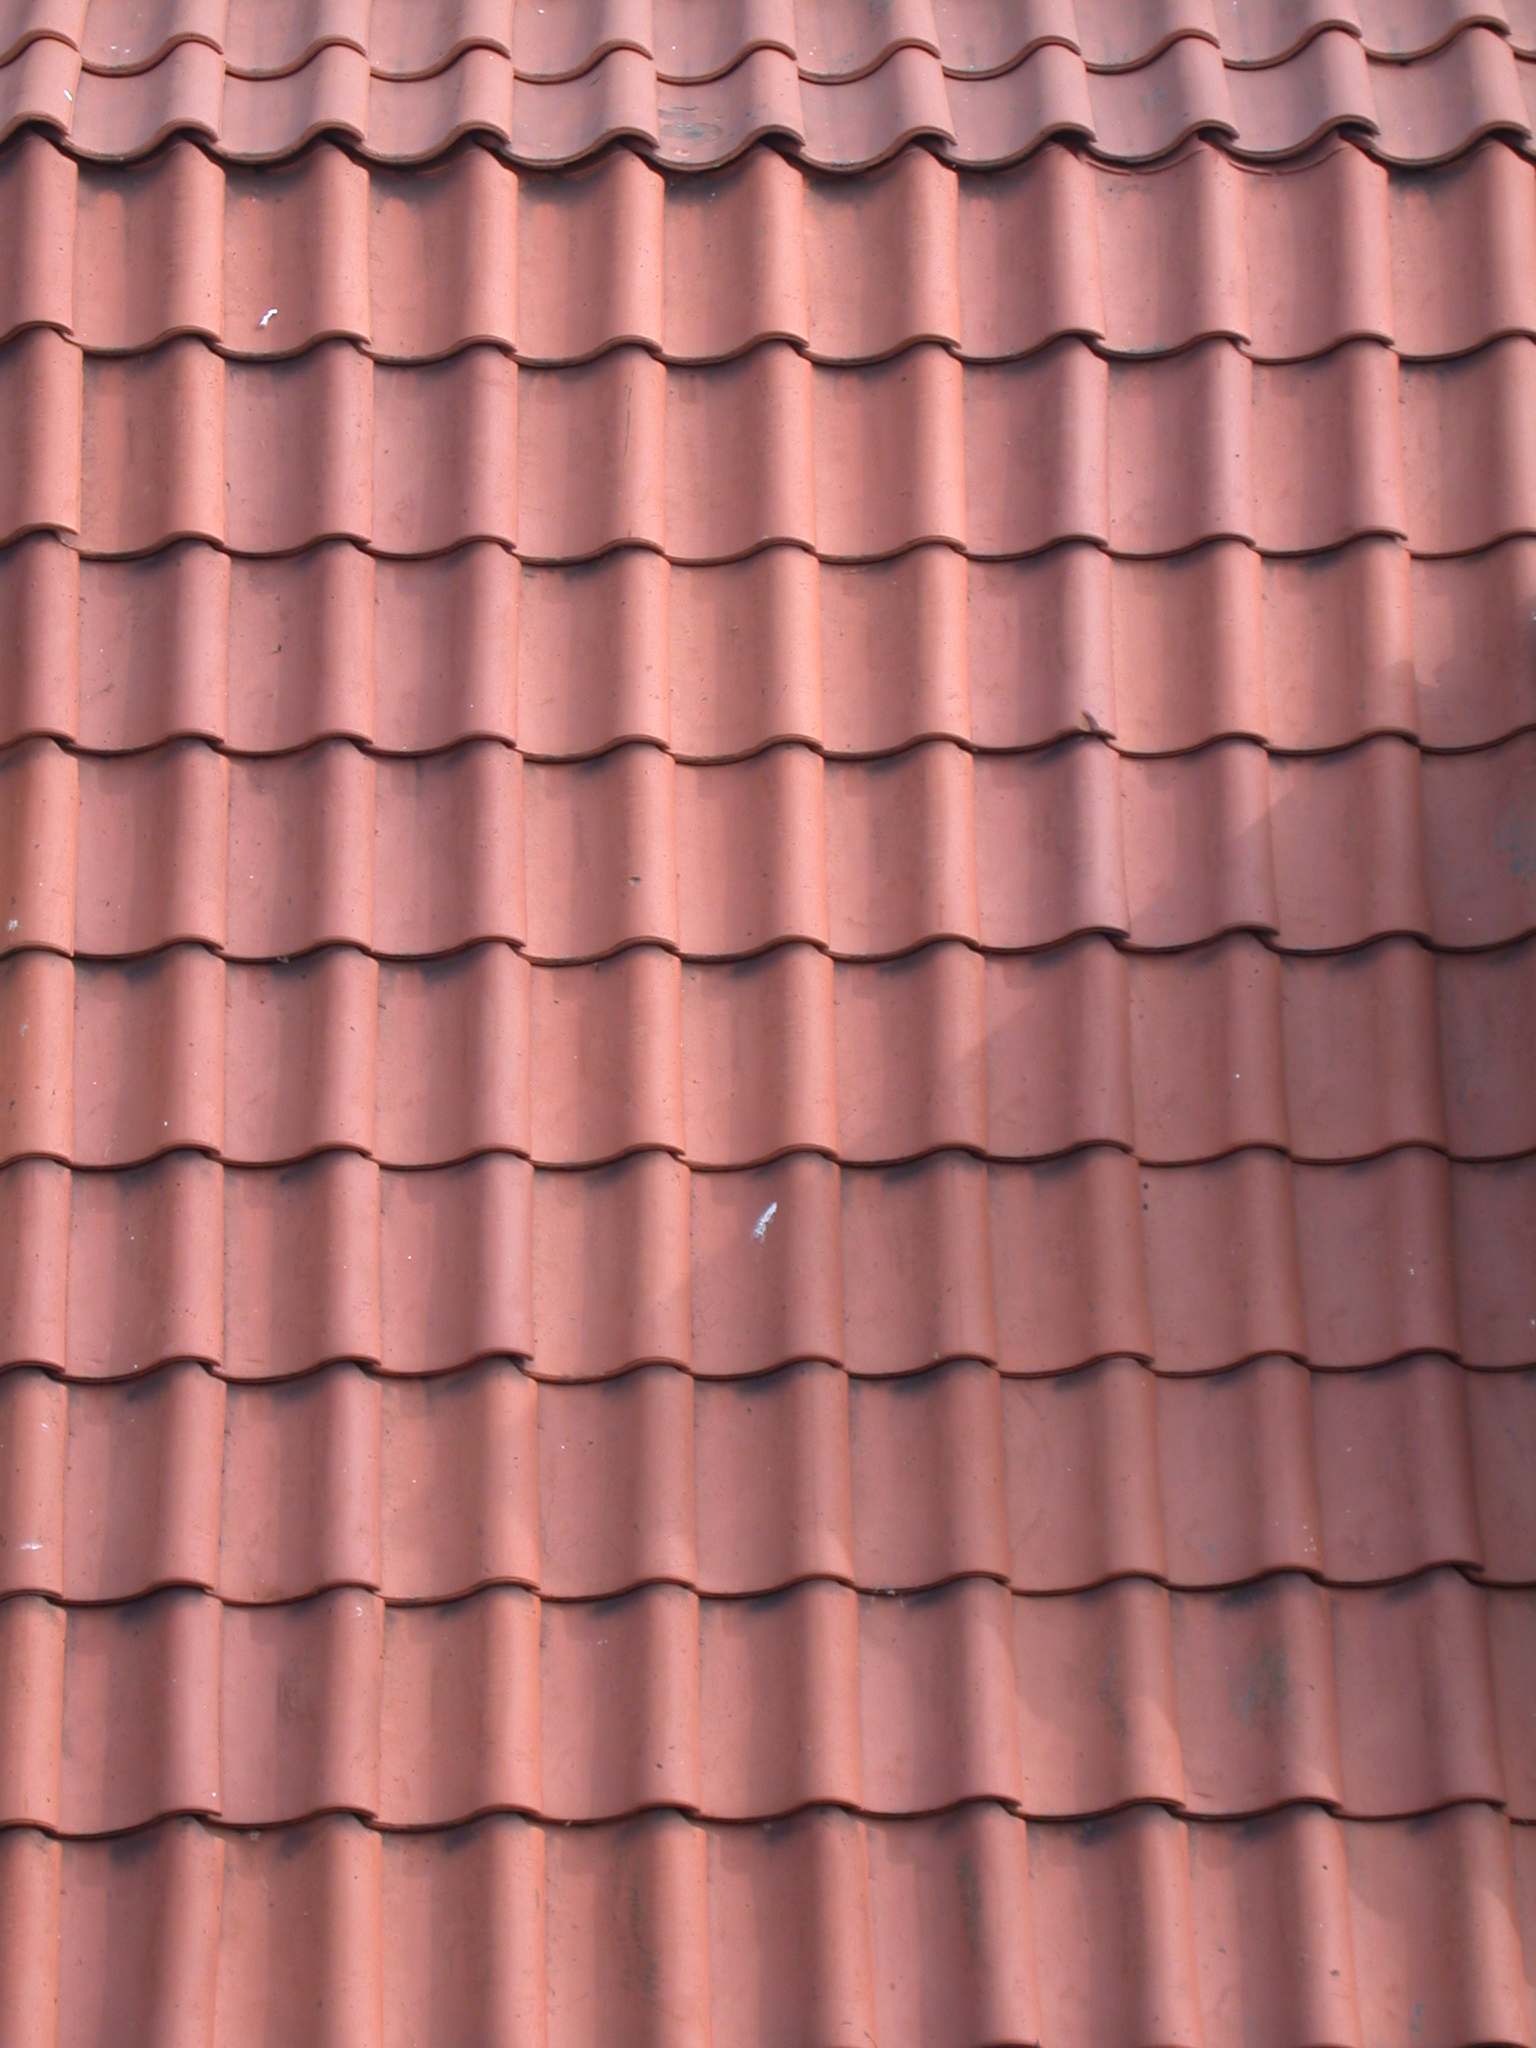 Image after photos roof texture orange red tile tiles for Roof tile patterns